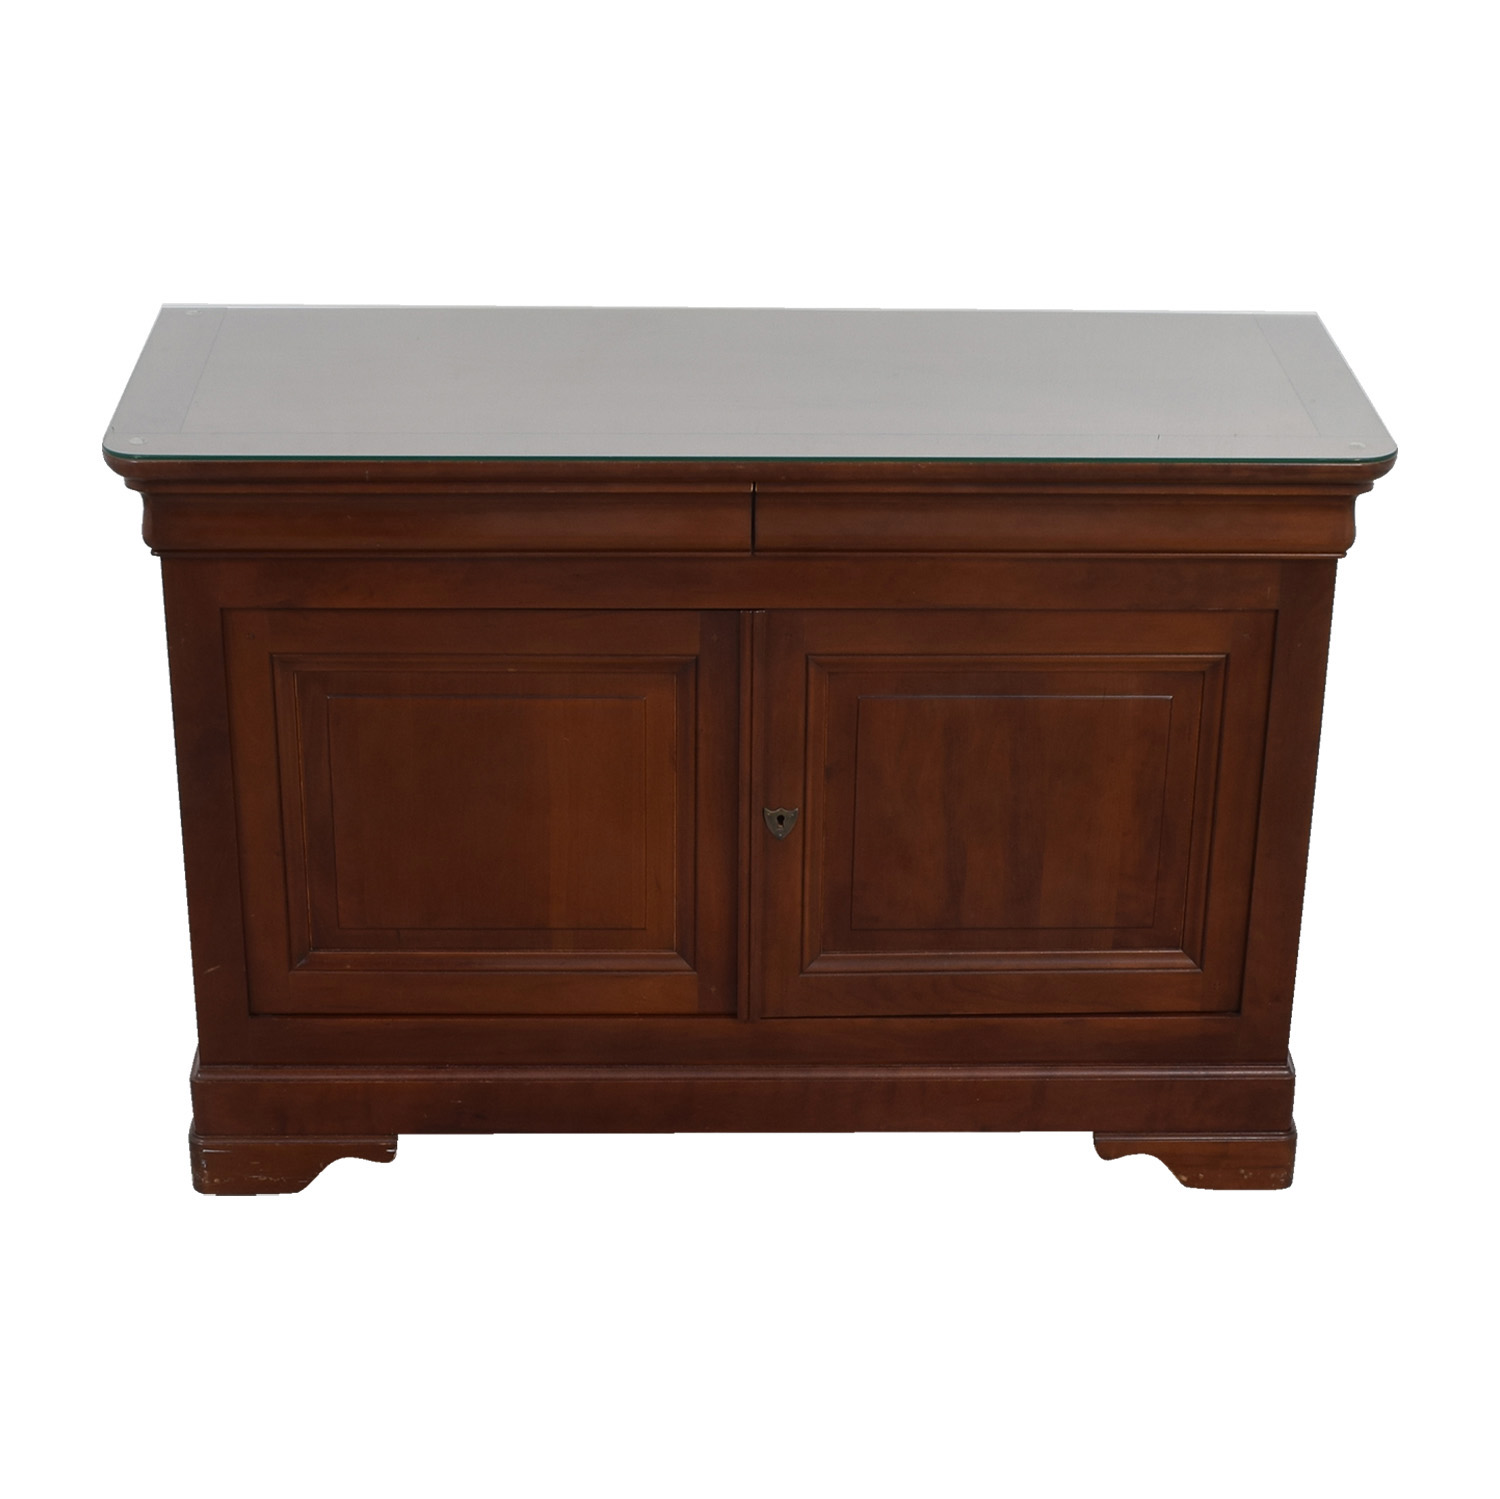 cabinets sideboard sideboards fall sink buffet door toilet table blue decor and g ikea